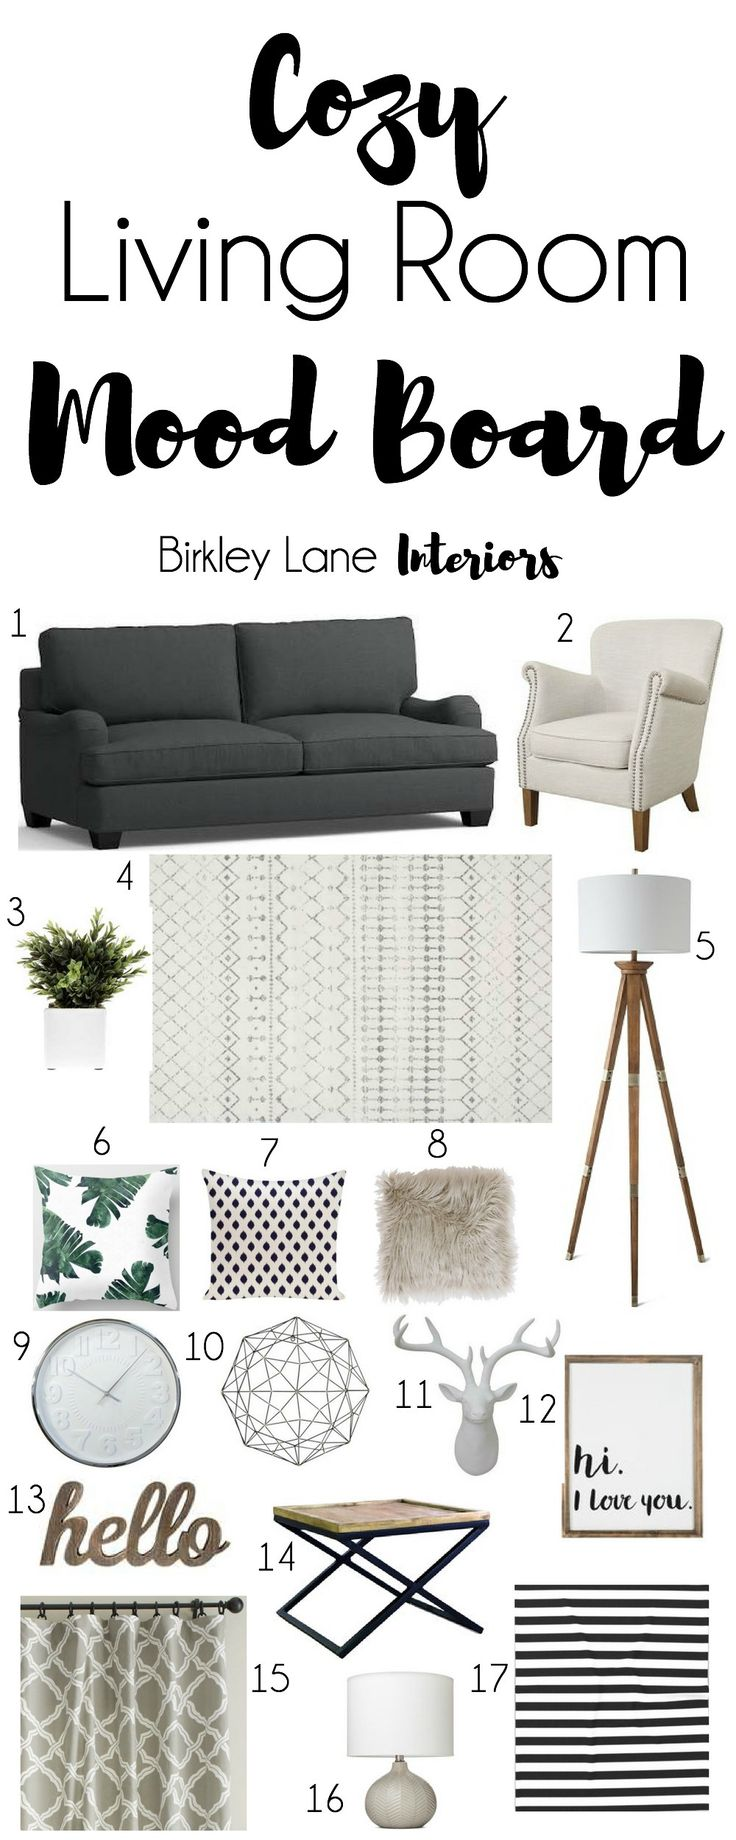 List of living room accessories - Cozy Living Room Mood Board